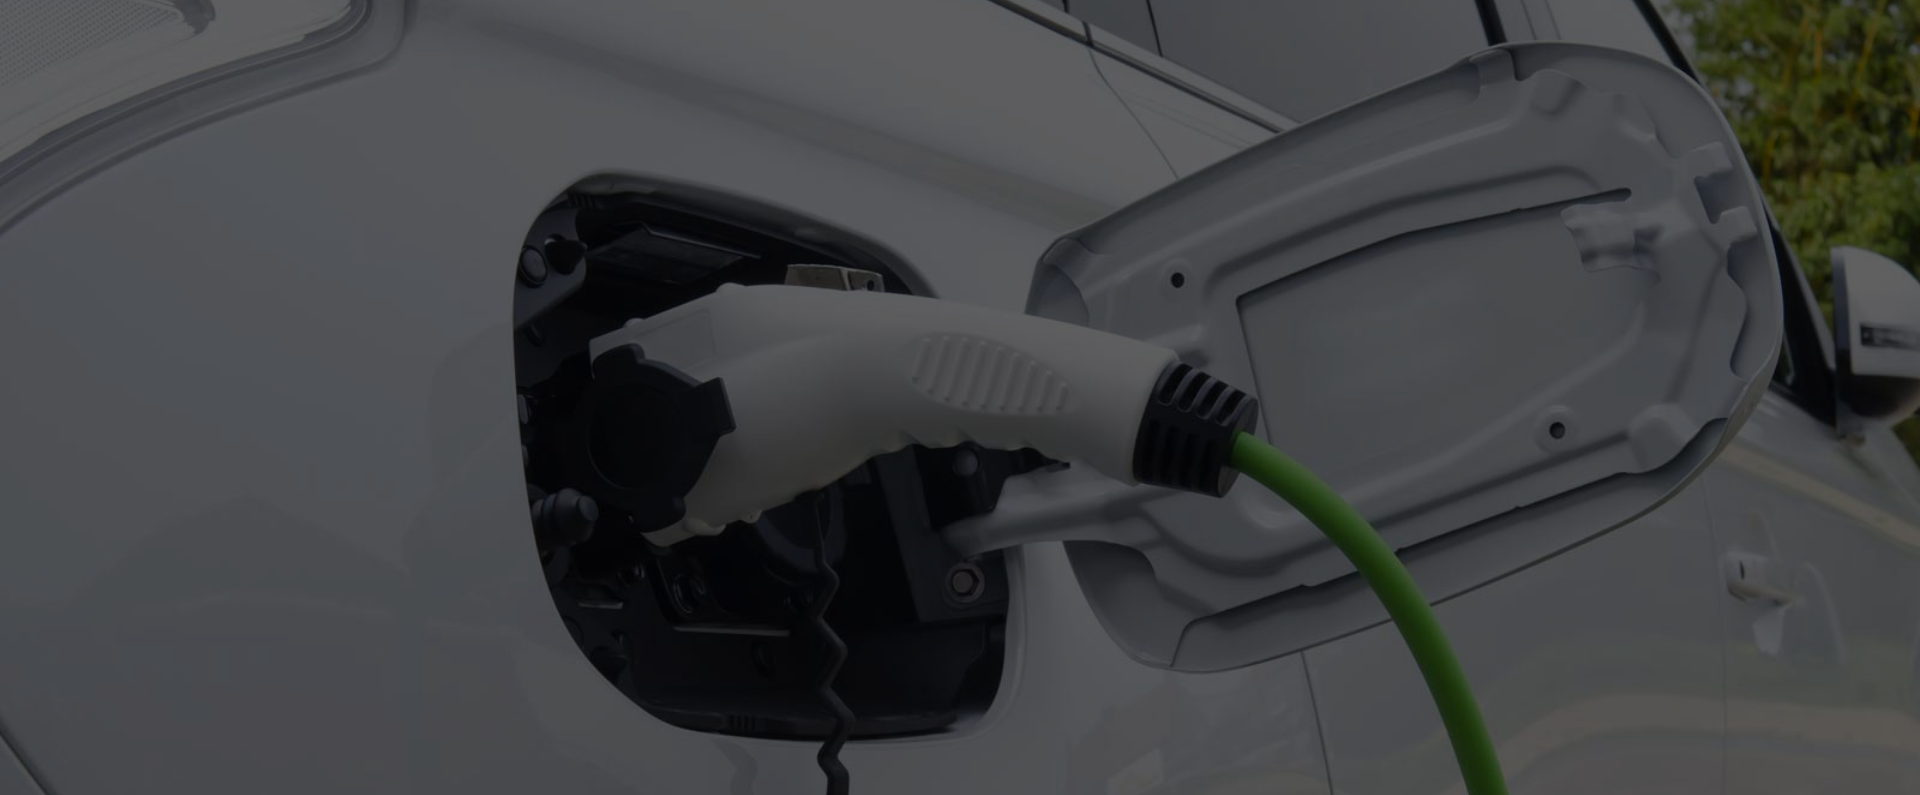 First Priority GreenFleet Electric Vehicle Service Electrification